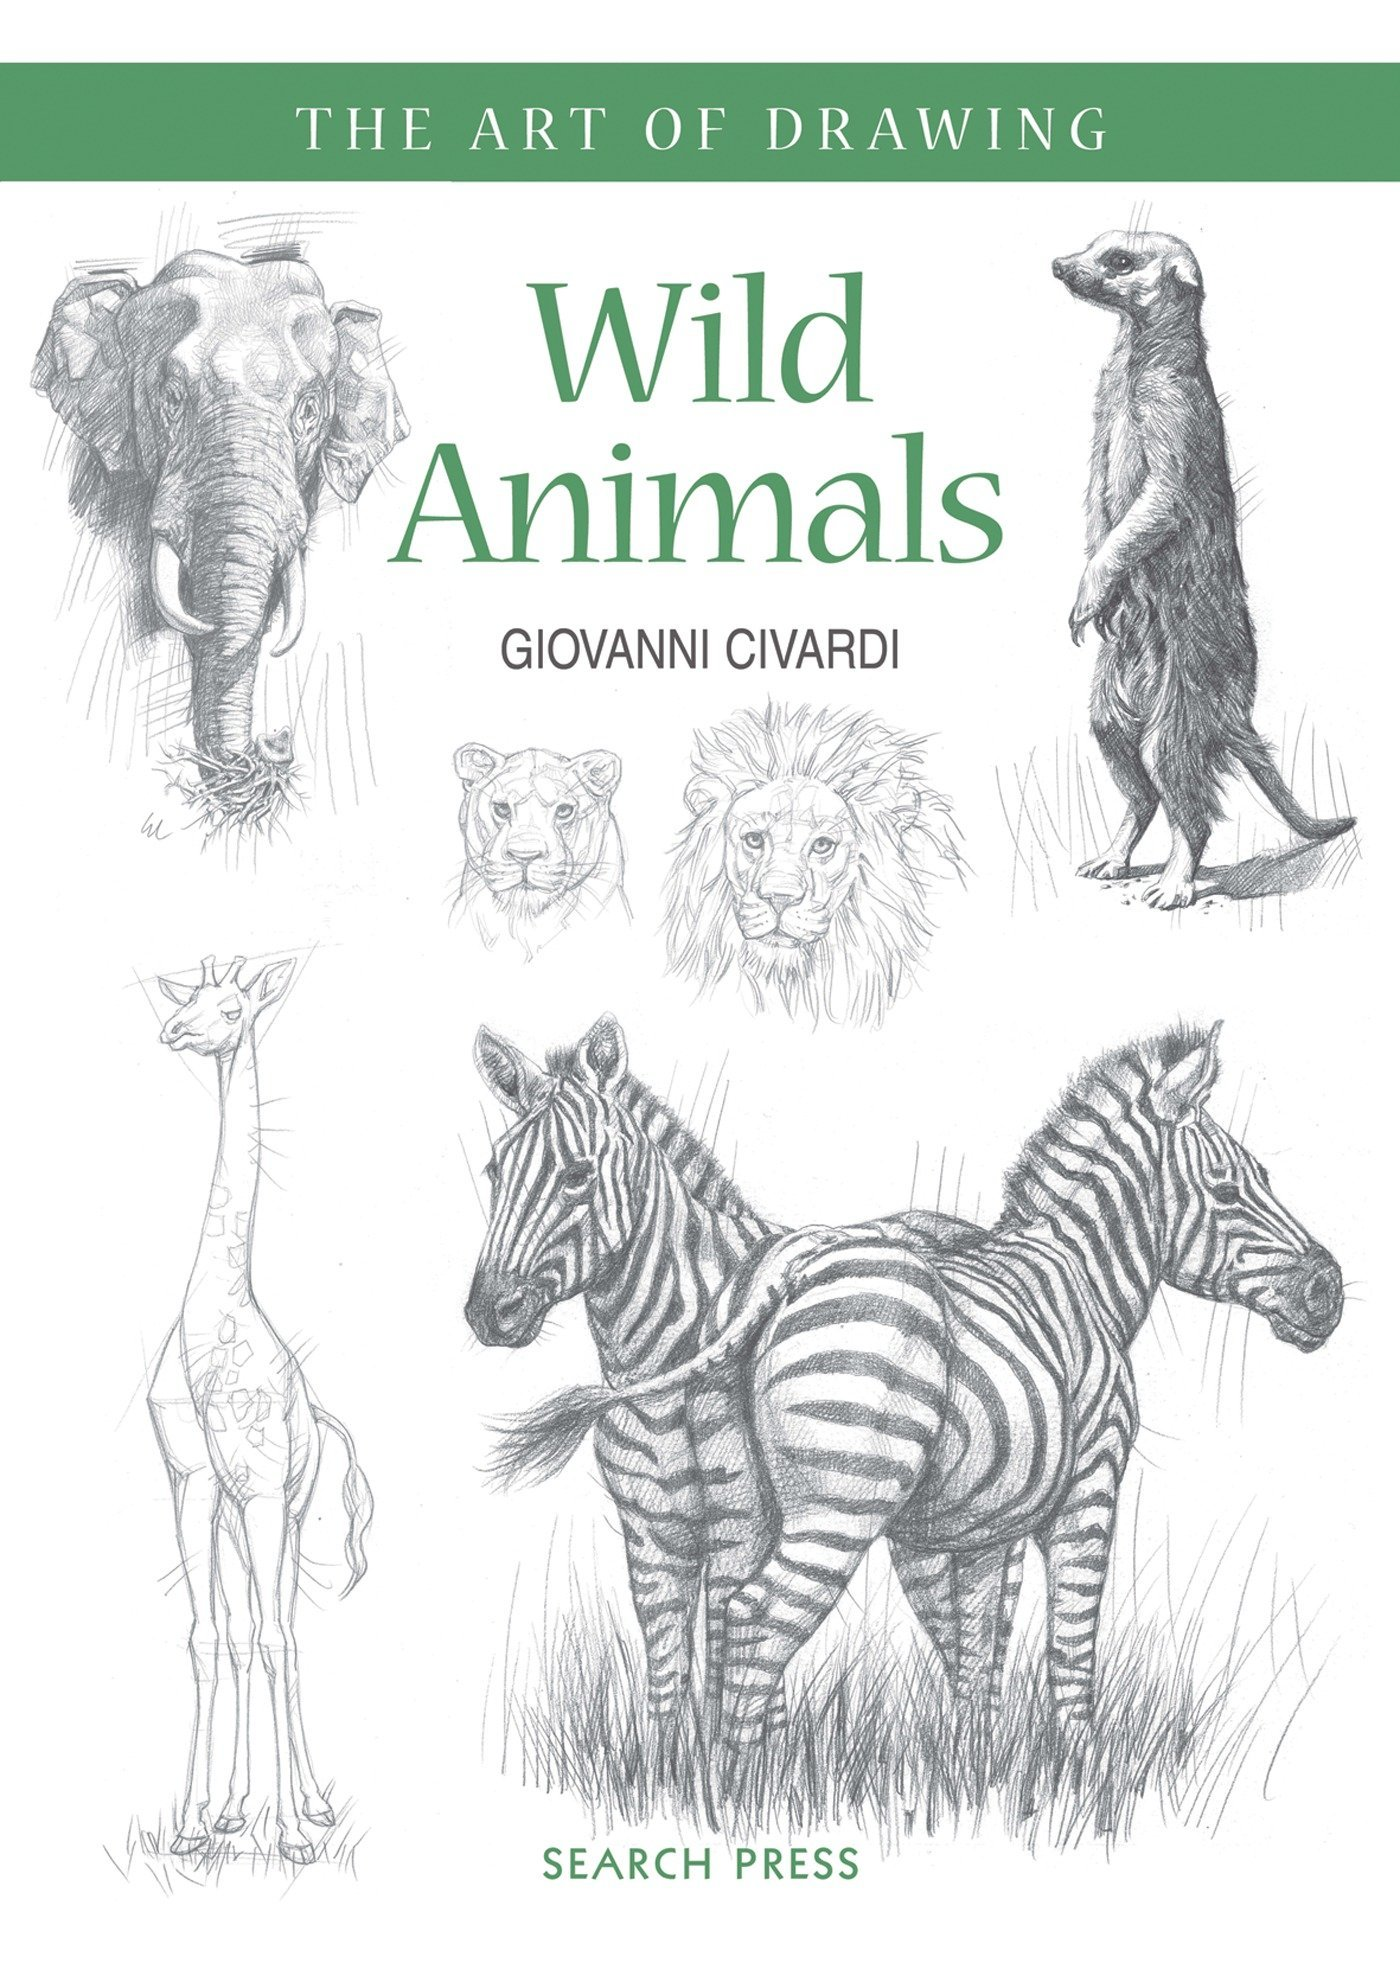 Art of drawing wild animals how to draw elephants tigers lions and other animals paperback april 18 2016